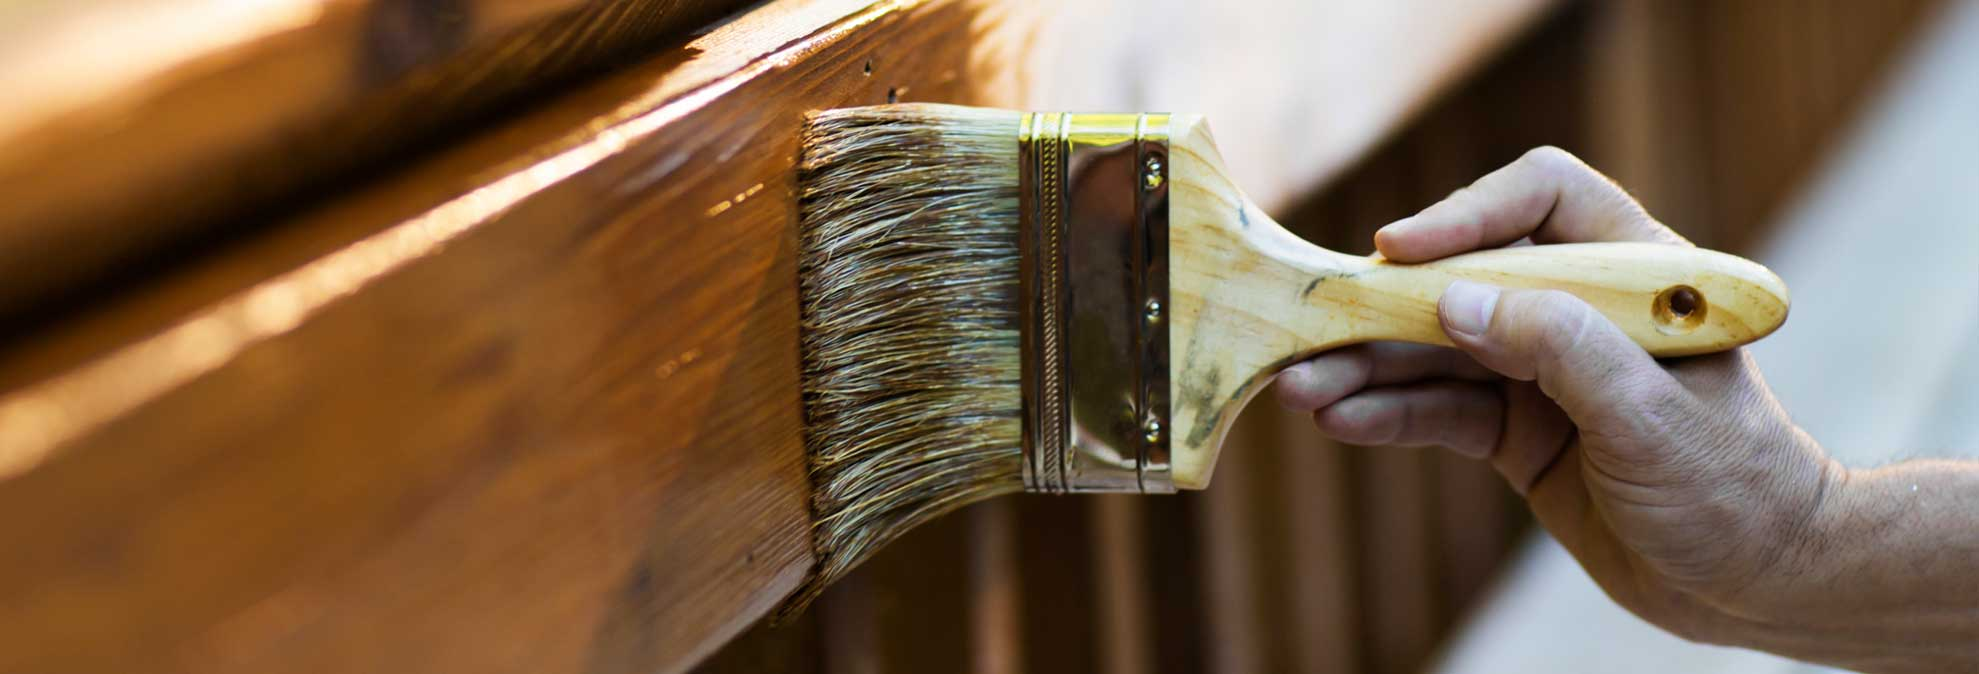 Find A Wood Stain That Lasts Consumer Reports